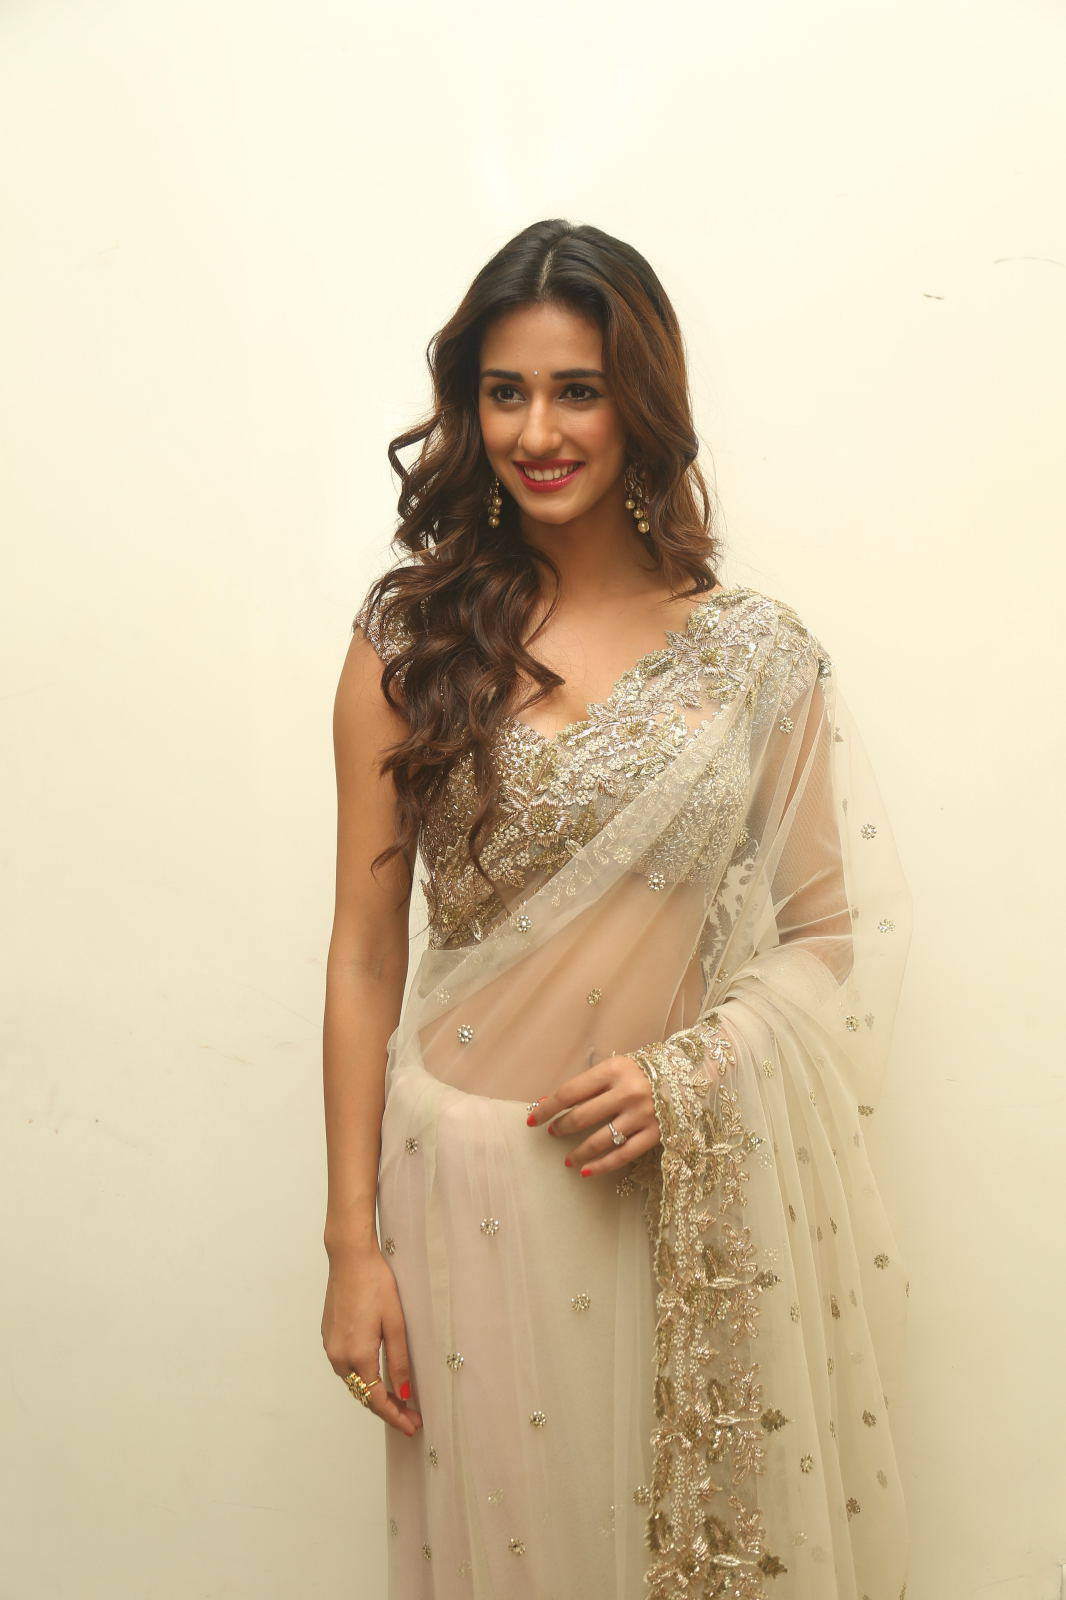 Disha Patani topless wallpapers